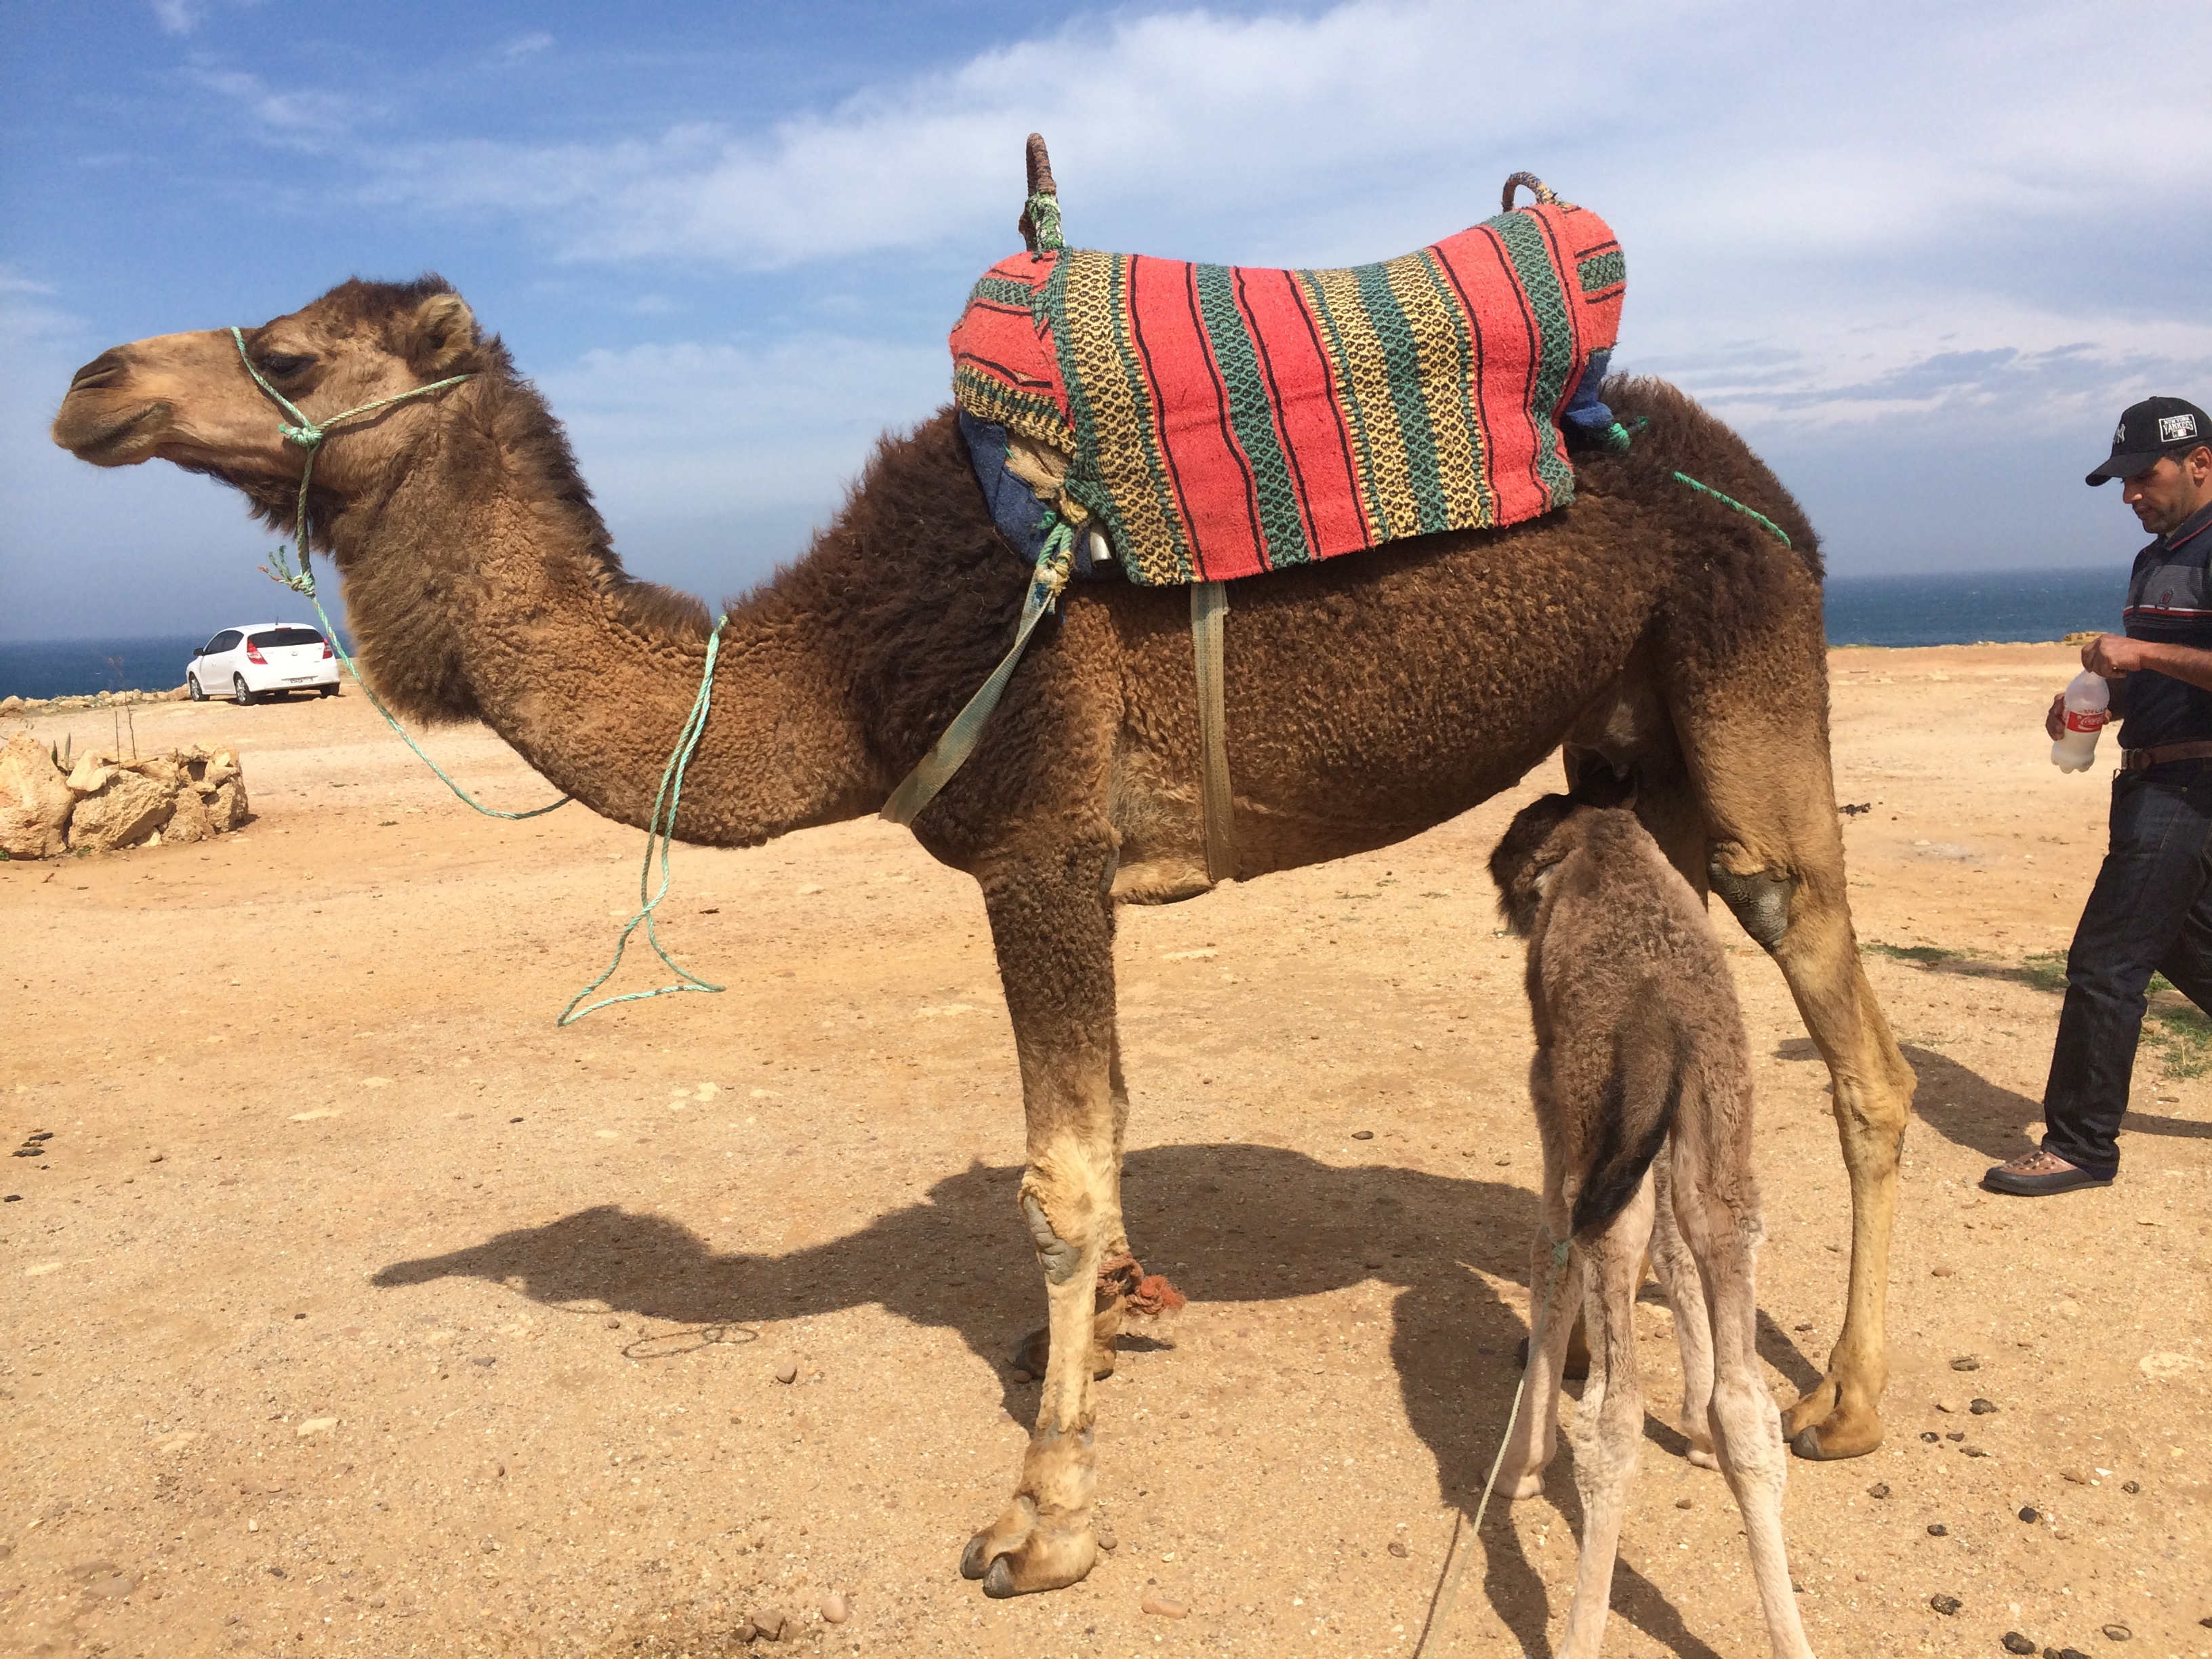 A camel and her calf in Tangiers, Morocco, April 2014 | Photo by Kat Dayton, St. George News